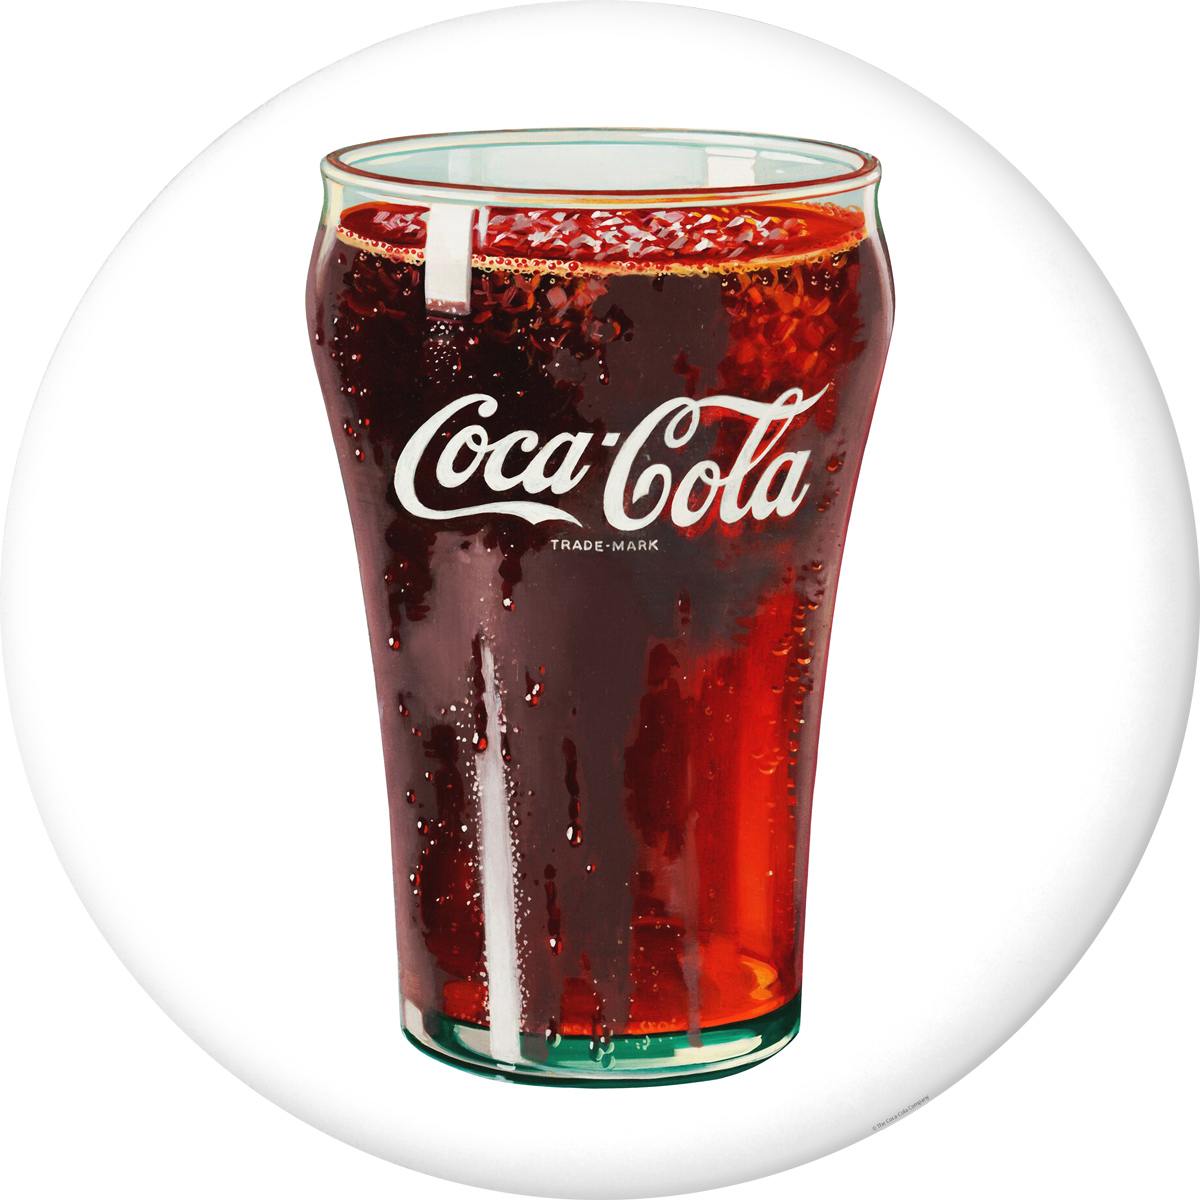 Image result for a glass of cola